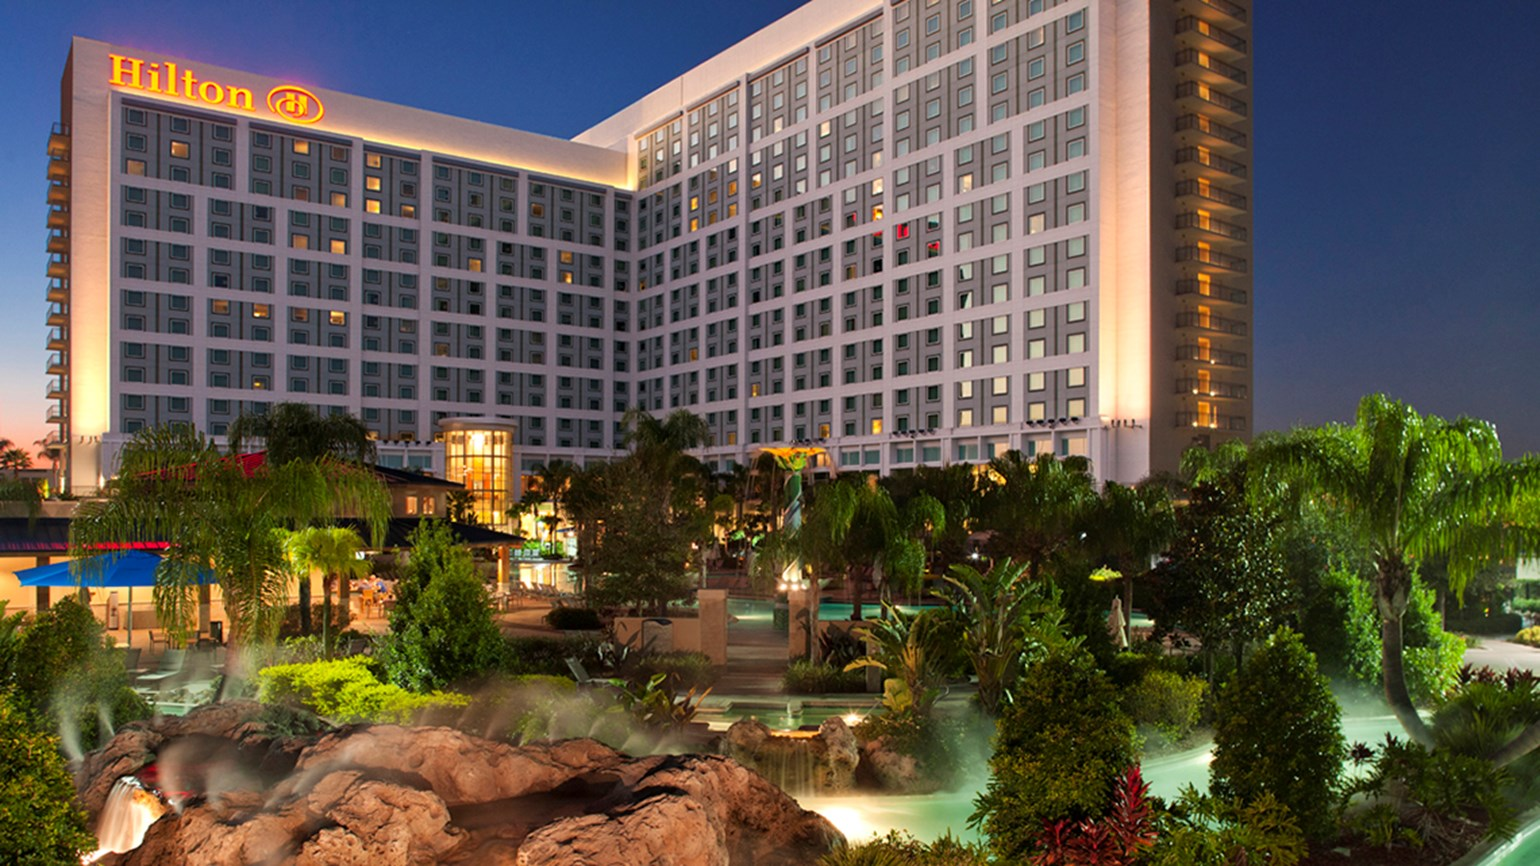 Hilton Orlando offers educator discount